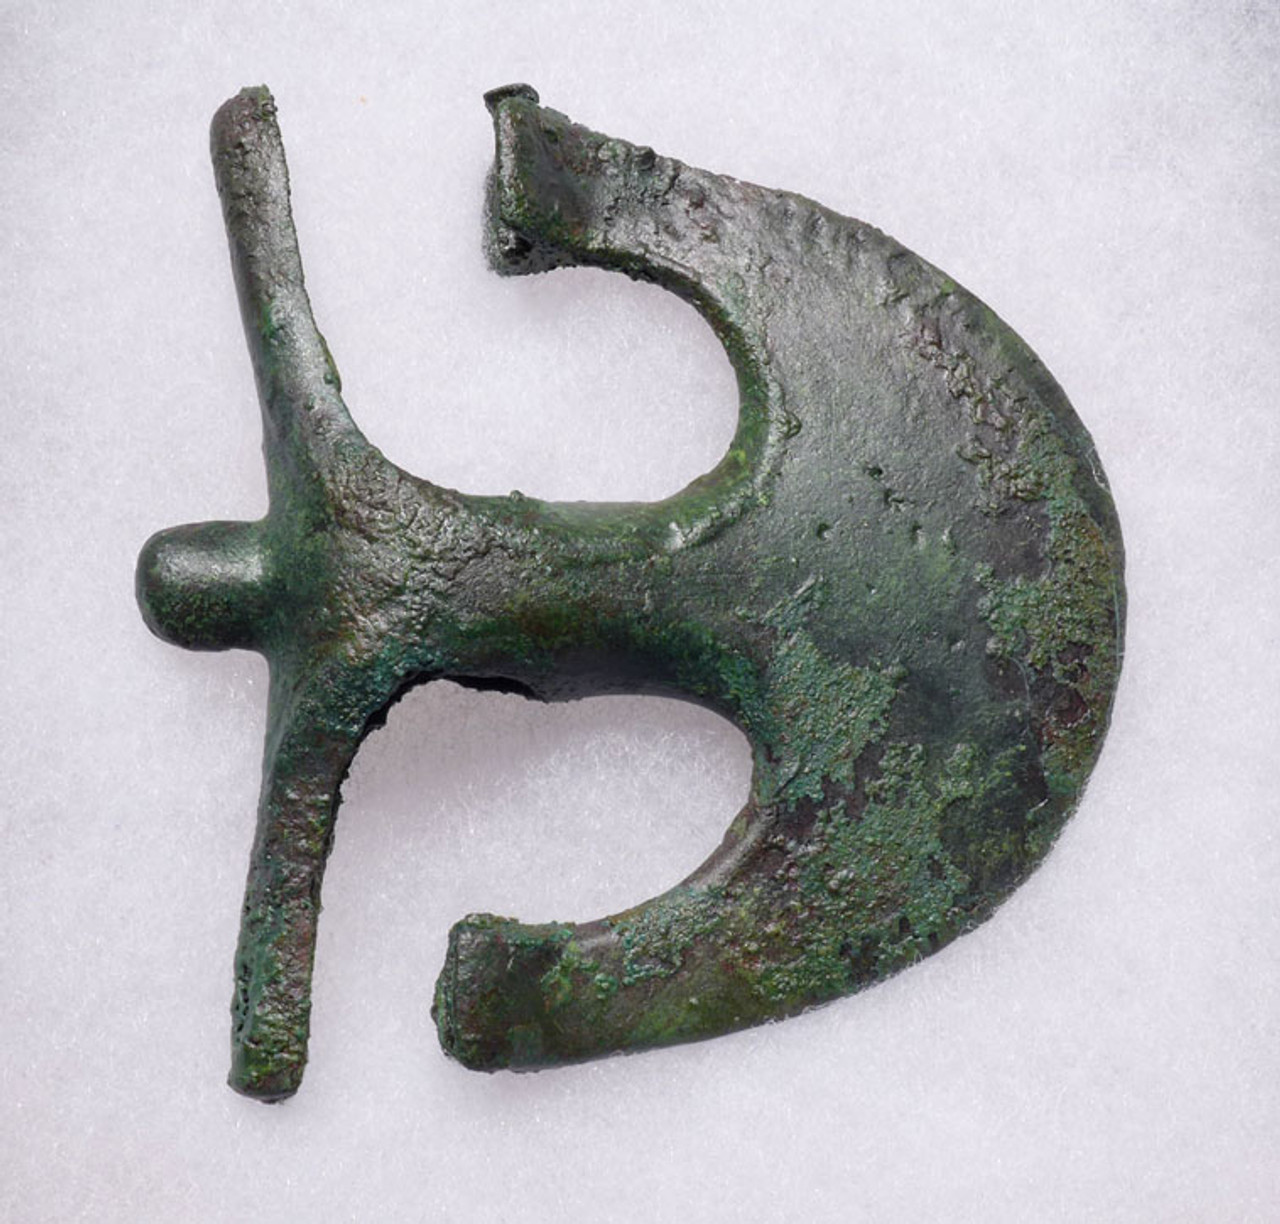 NE150  - RARE ANCIENT BRONZE LURISTAN CRESCENT ANCHOR AXE FROM THE NEAR EASTERN LURISTAN CULTURE